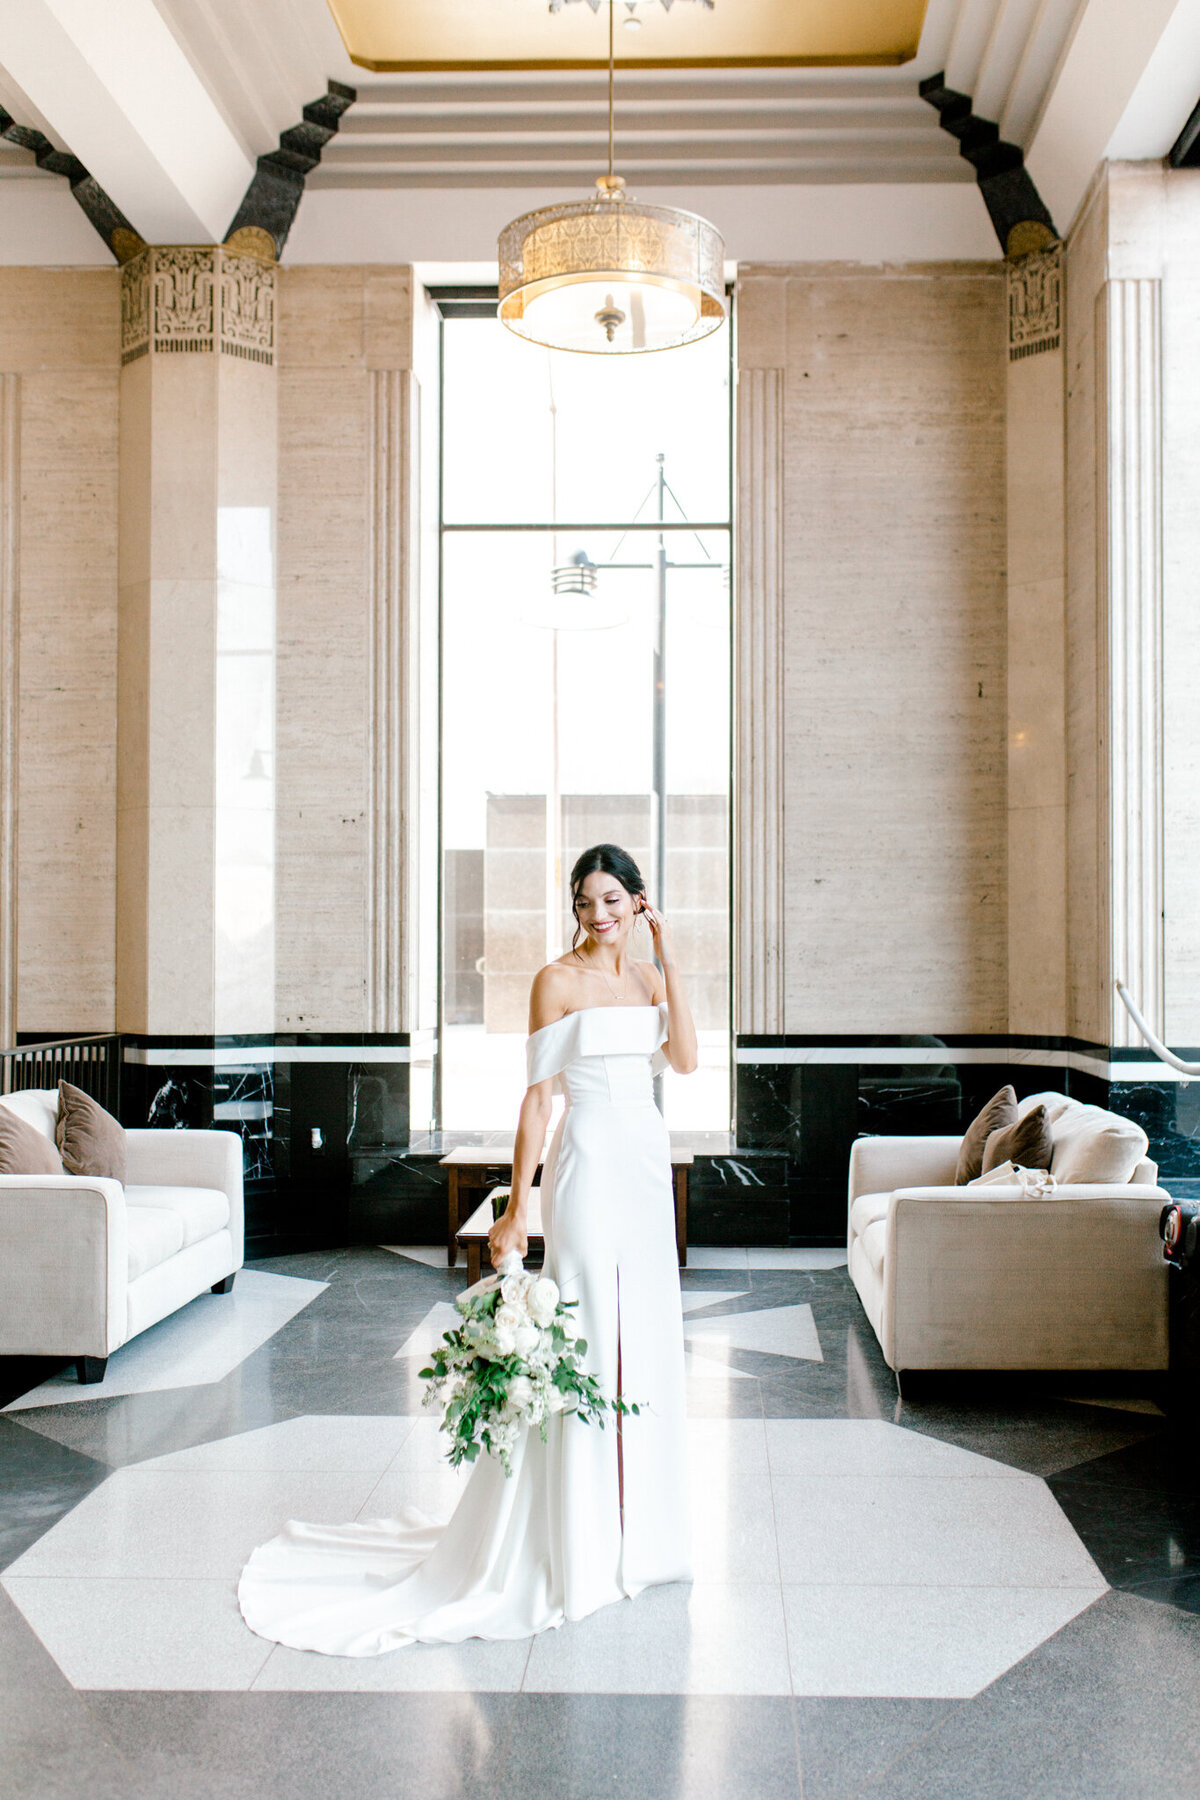 Hope & Zack's Wedding at the Carlisle Room | Dallas Wedding Photographer | Sami Kathryn Photography-37